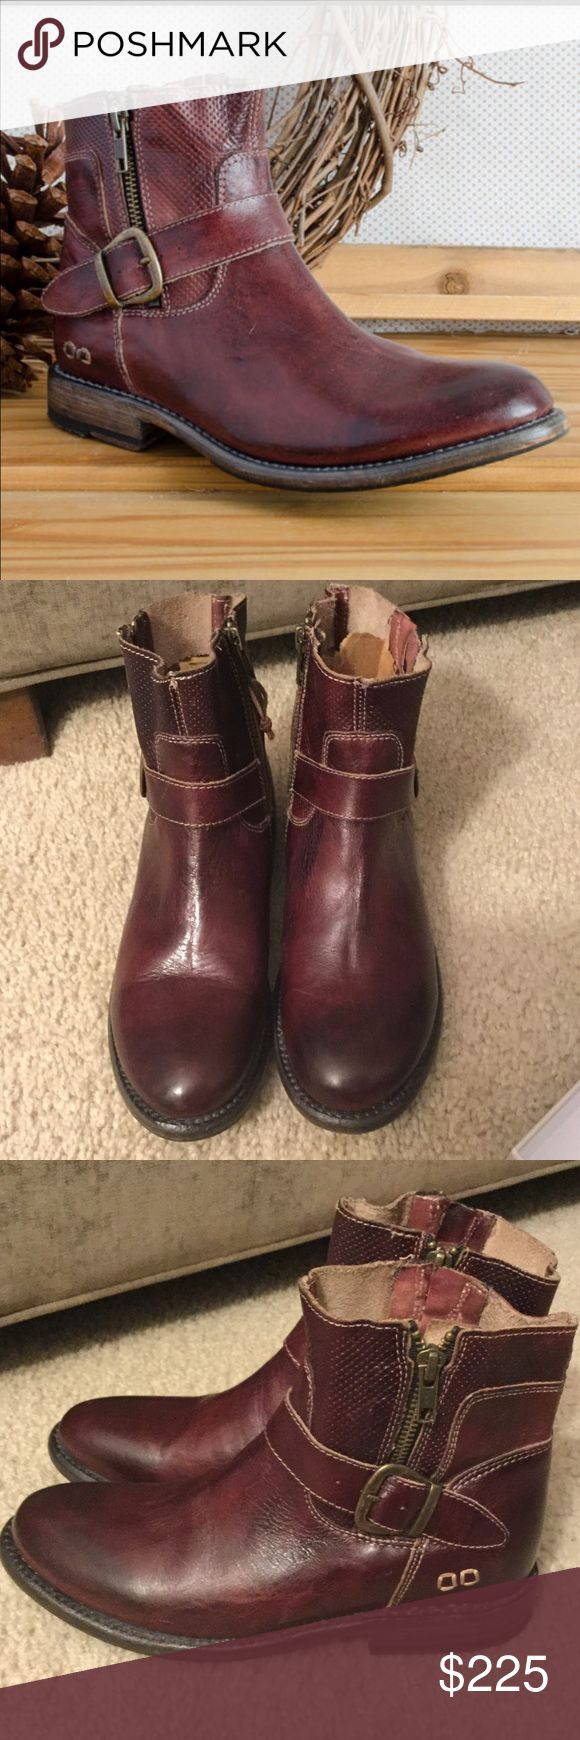 """NWOT, Bed Stu, 'Becca,' Scarlett Rustic, Size 7 NWOT, display model, no original box. Size 7. Make an offer!! Great Color.. it's like a brown/red. For the style-conscious, BECCA is your ticket to a winning look. This ankle boot is built with dual zippers, buckle detail on ankle, and embossing on shaft. Easy to wear, and fashionable enough for everyday. Rich full grain leather • Dual Zippers, embossed shaft • Goodyear welt sole, Rubber heel for traction • 6"""" shaft, 1"""" heel Bed Stu Shoes Ankle…"""